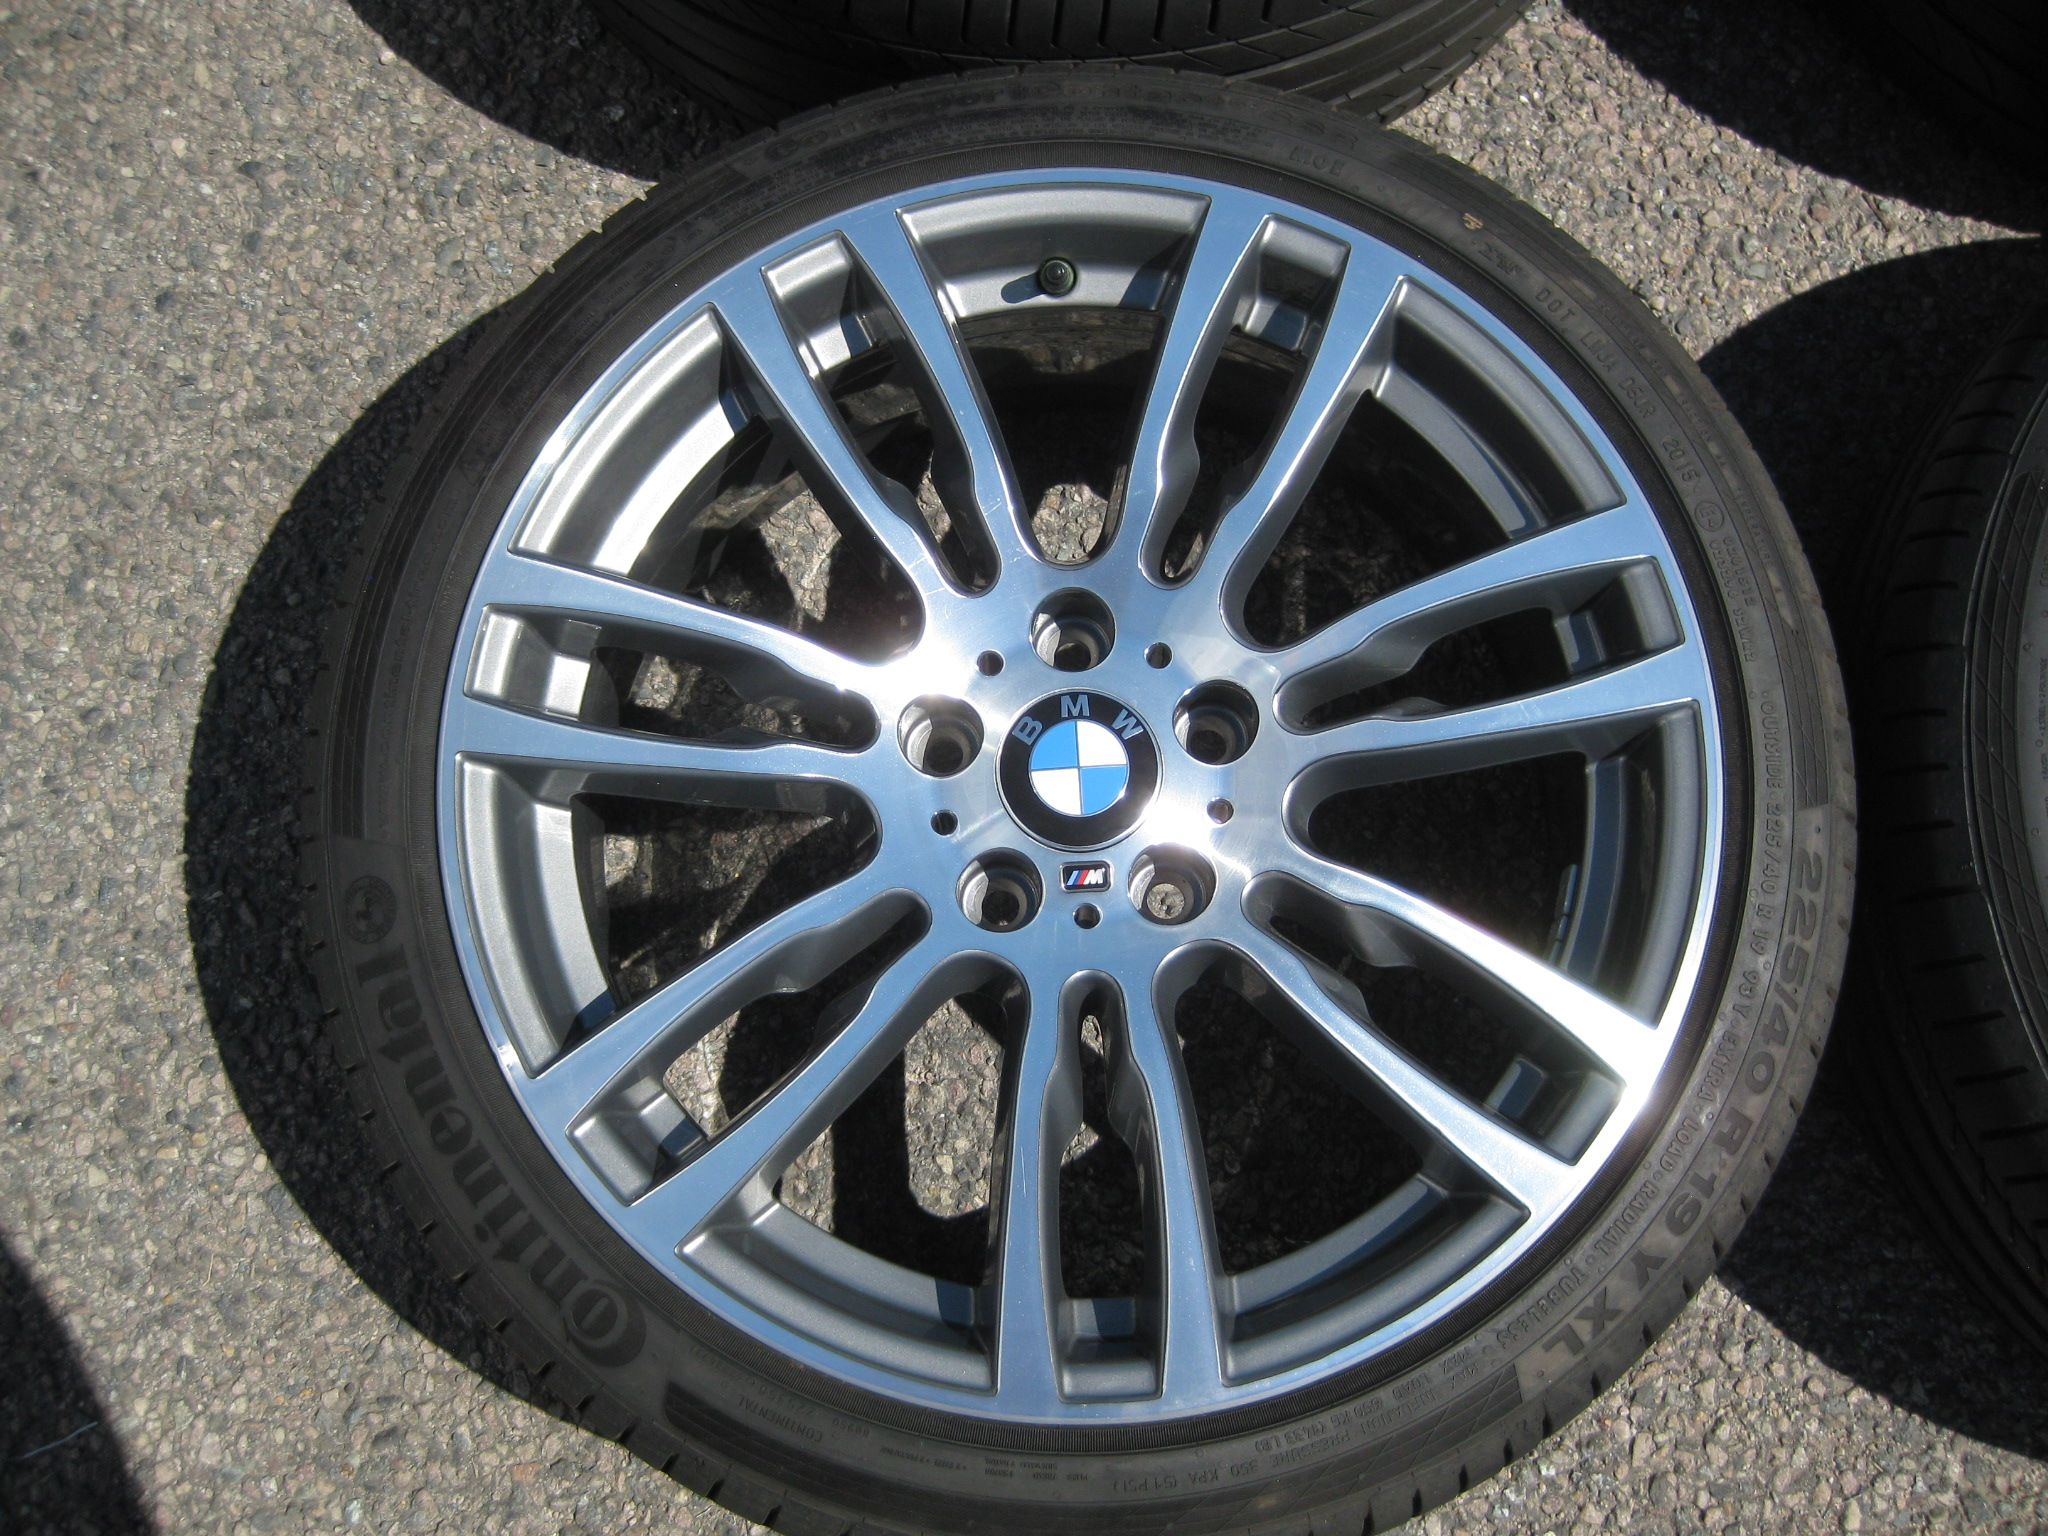 "USED 19"" GENUINE STYLE 403 F30/31 M DOUBLE SPOKE ALLOYS, FULLY REFURBED INC GOOD CONTINENTAL RUNFLATS"